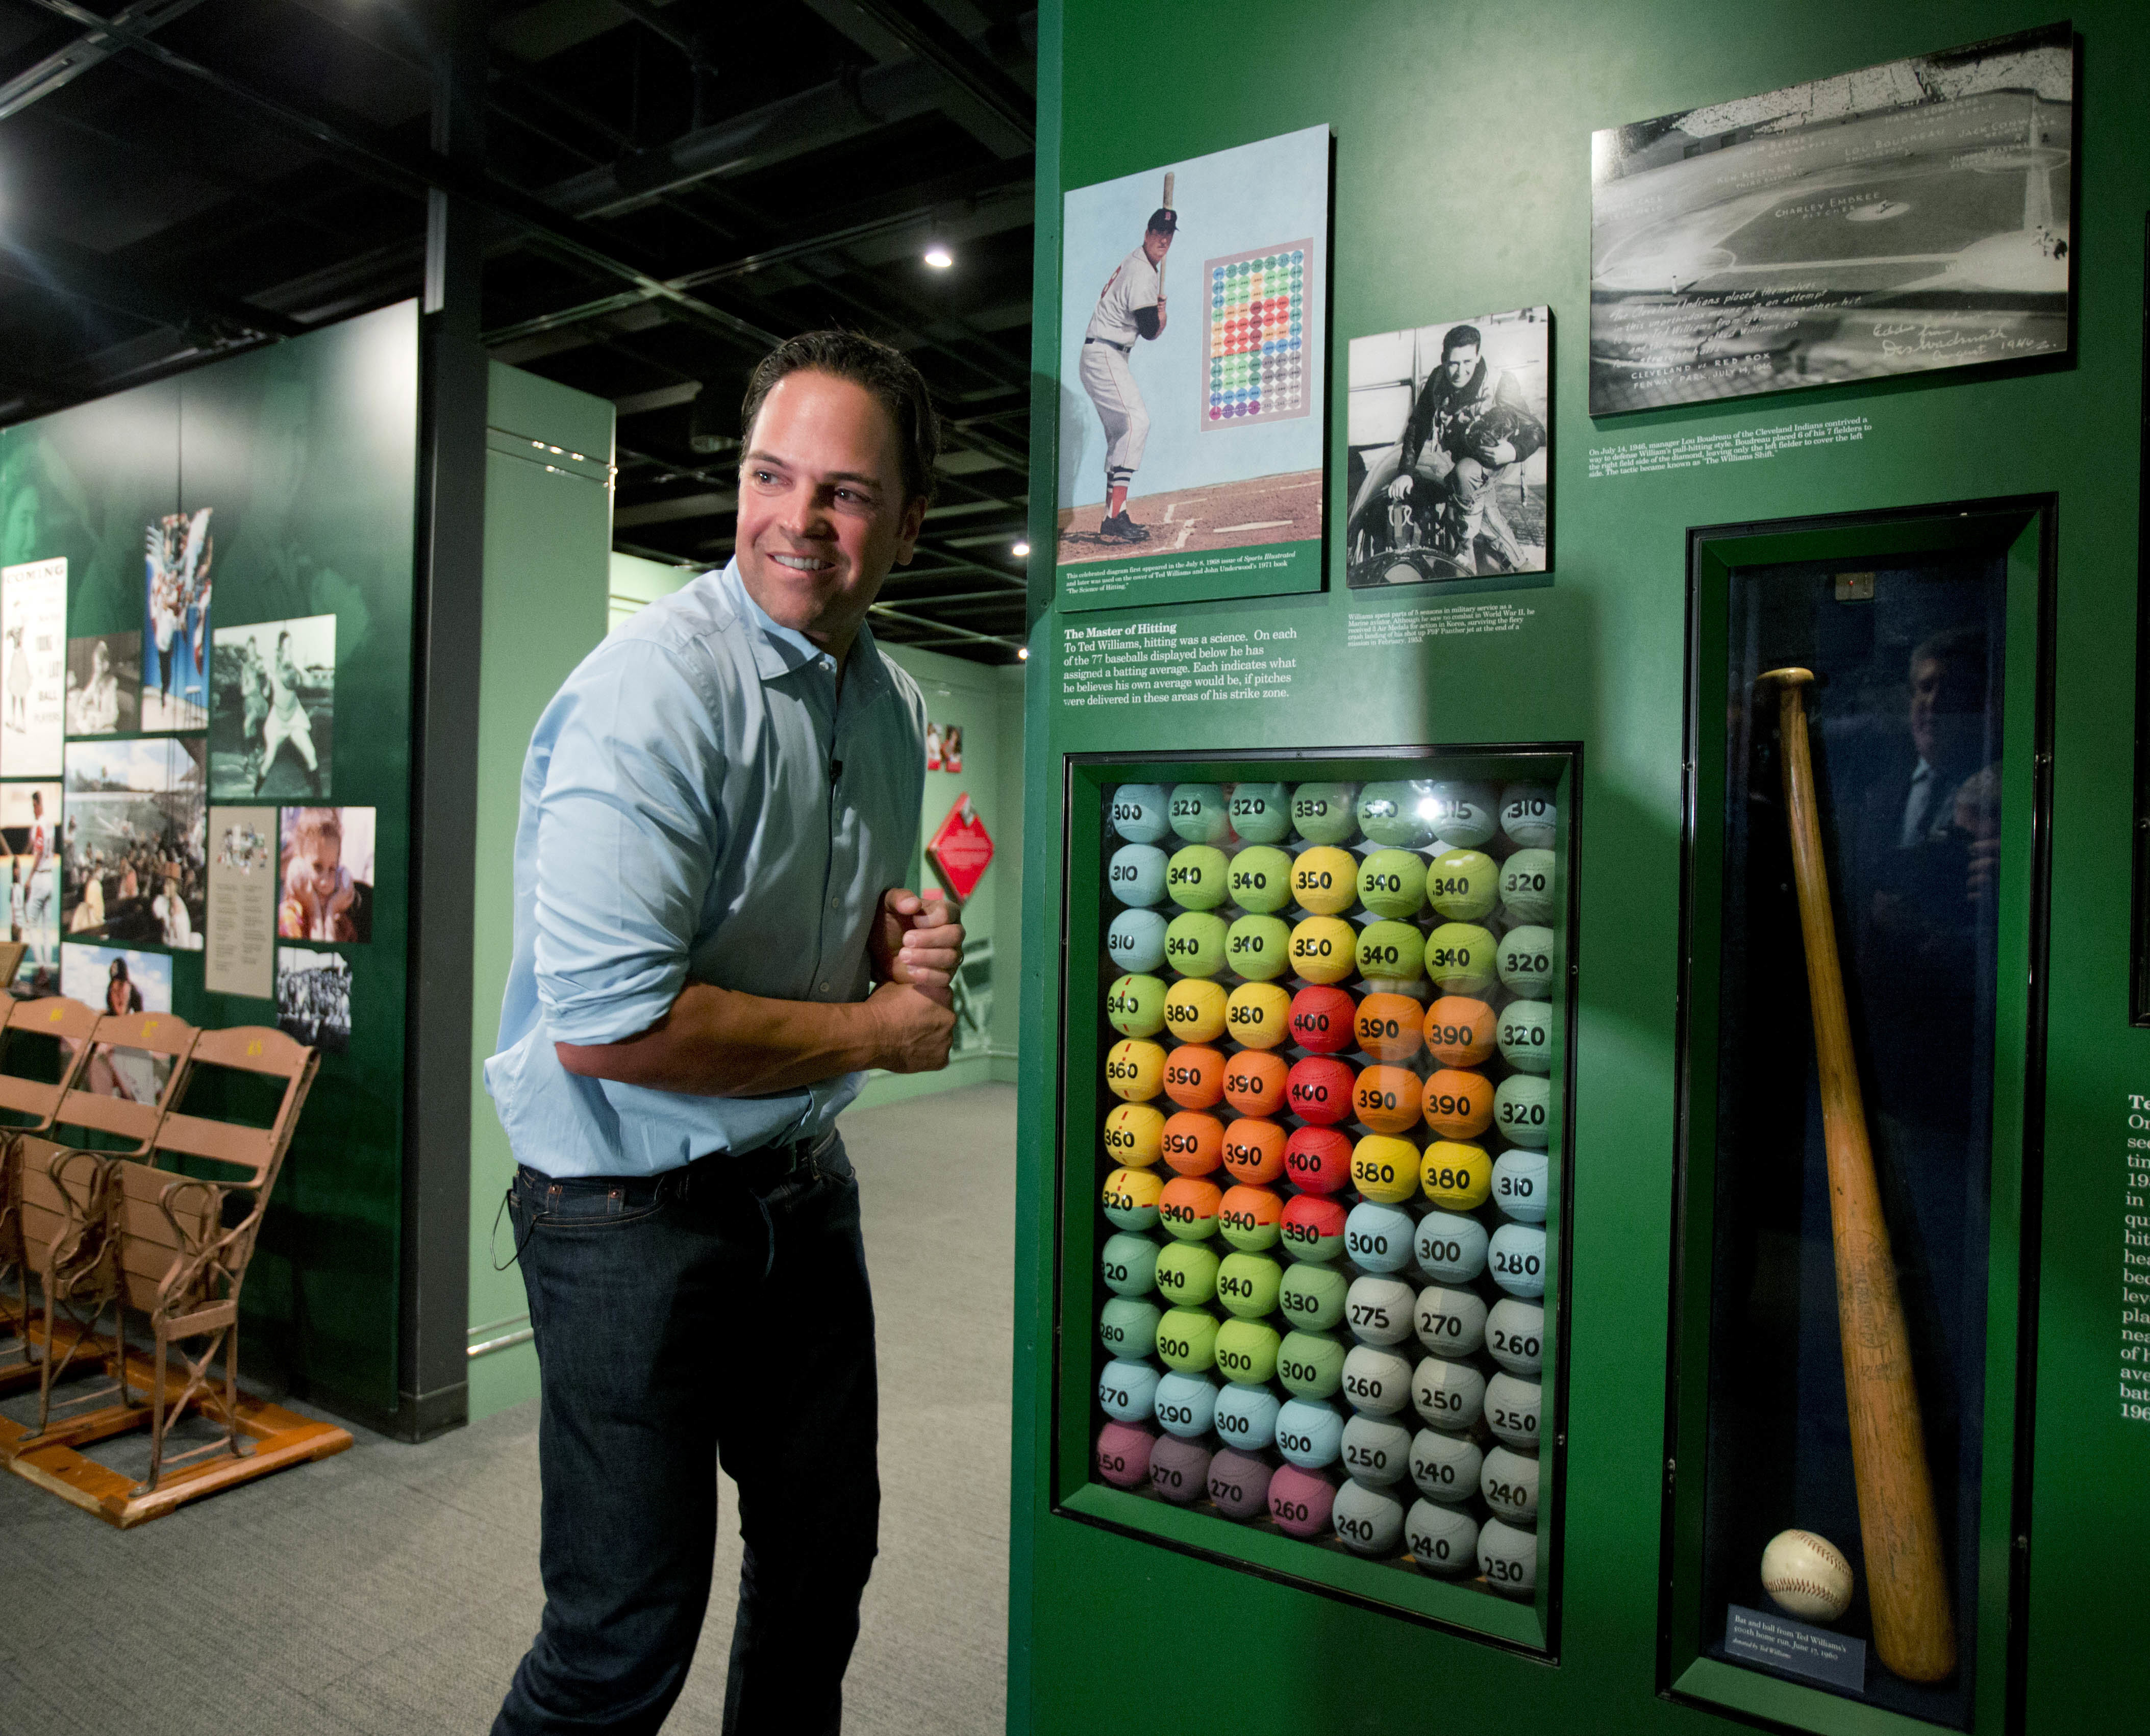 Baseball Hall of Fame electee Mike Piazza visits a Ted Williams exhibit during his orientation tour at the hall on Tuesday, March 8, 2016, in Cooperstown, N.Y. He will be inducted in July. (AP Photo/Mike Groll)